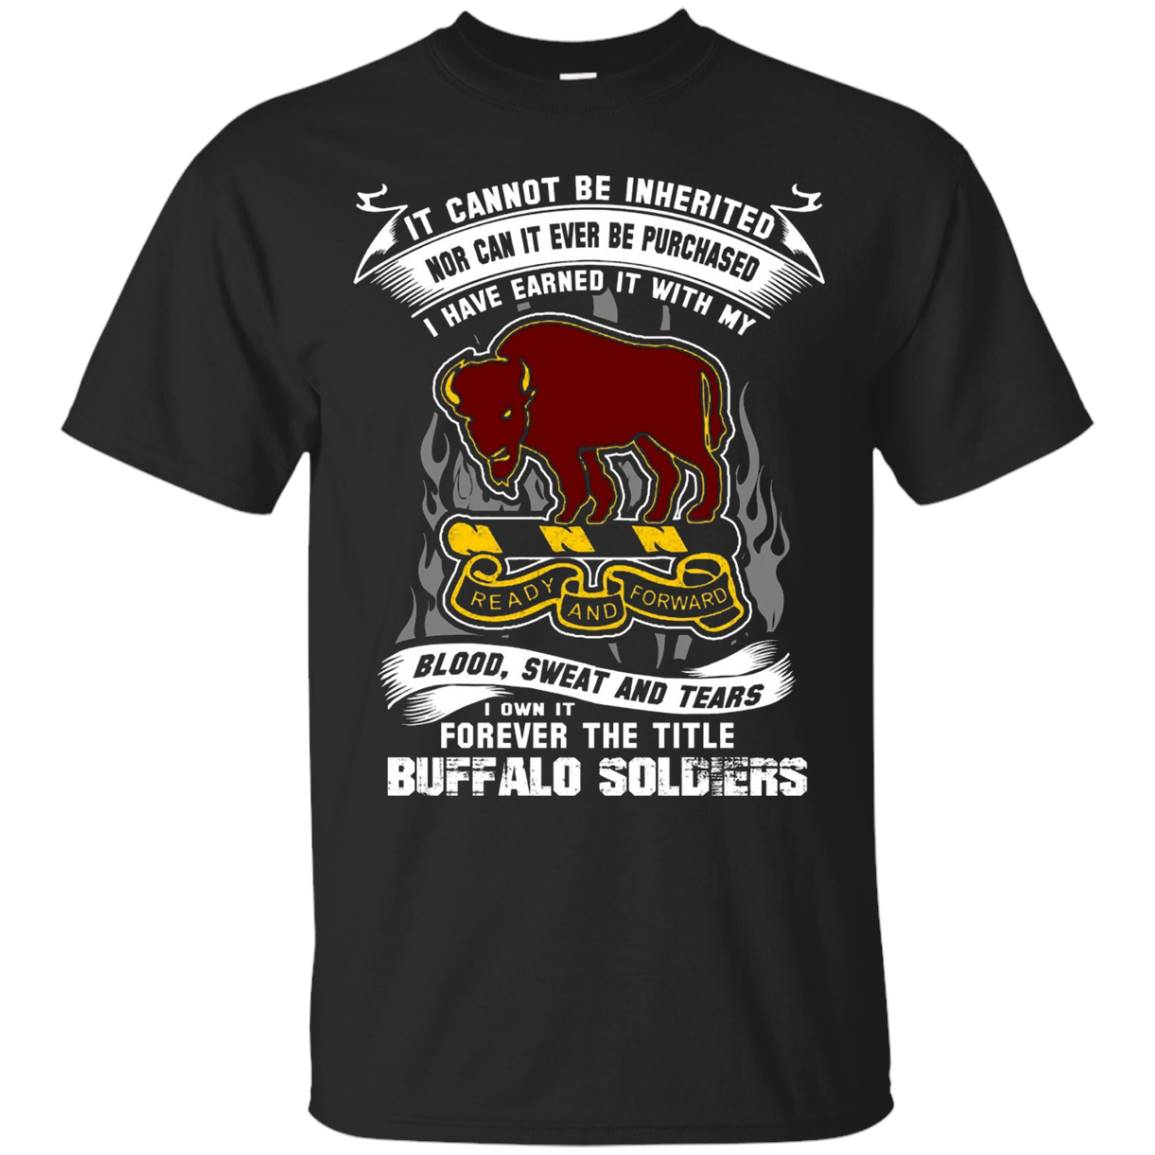 Buffalo Soldiers T-shirt , It cannot be inherited nor can it T-Shirt